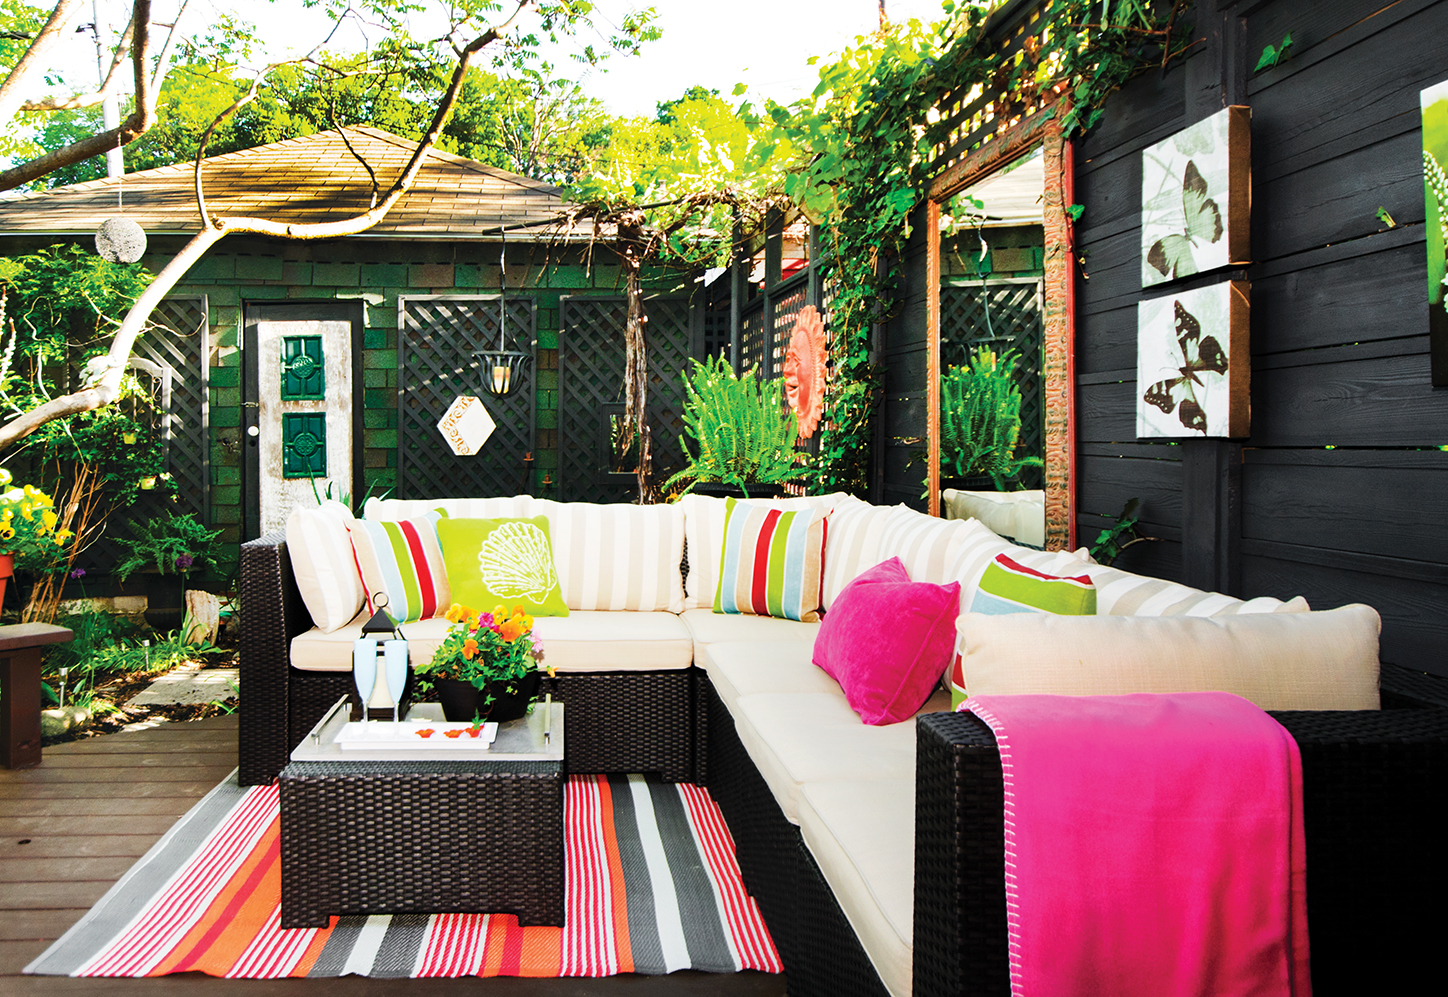 Elegant How To Create An Outdoor Living Space Ideas